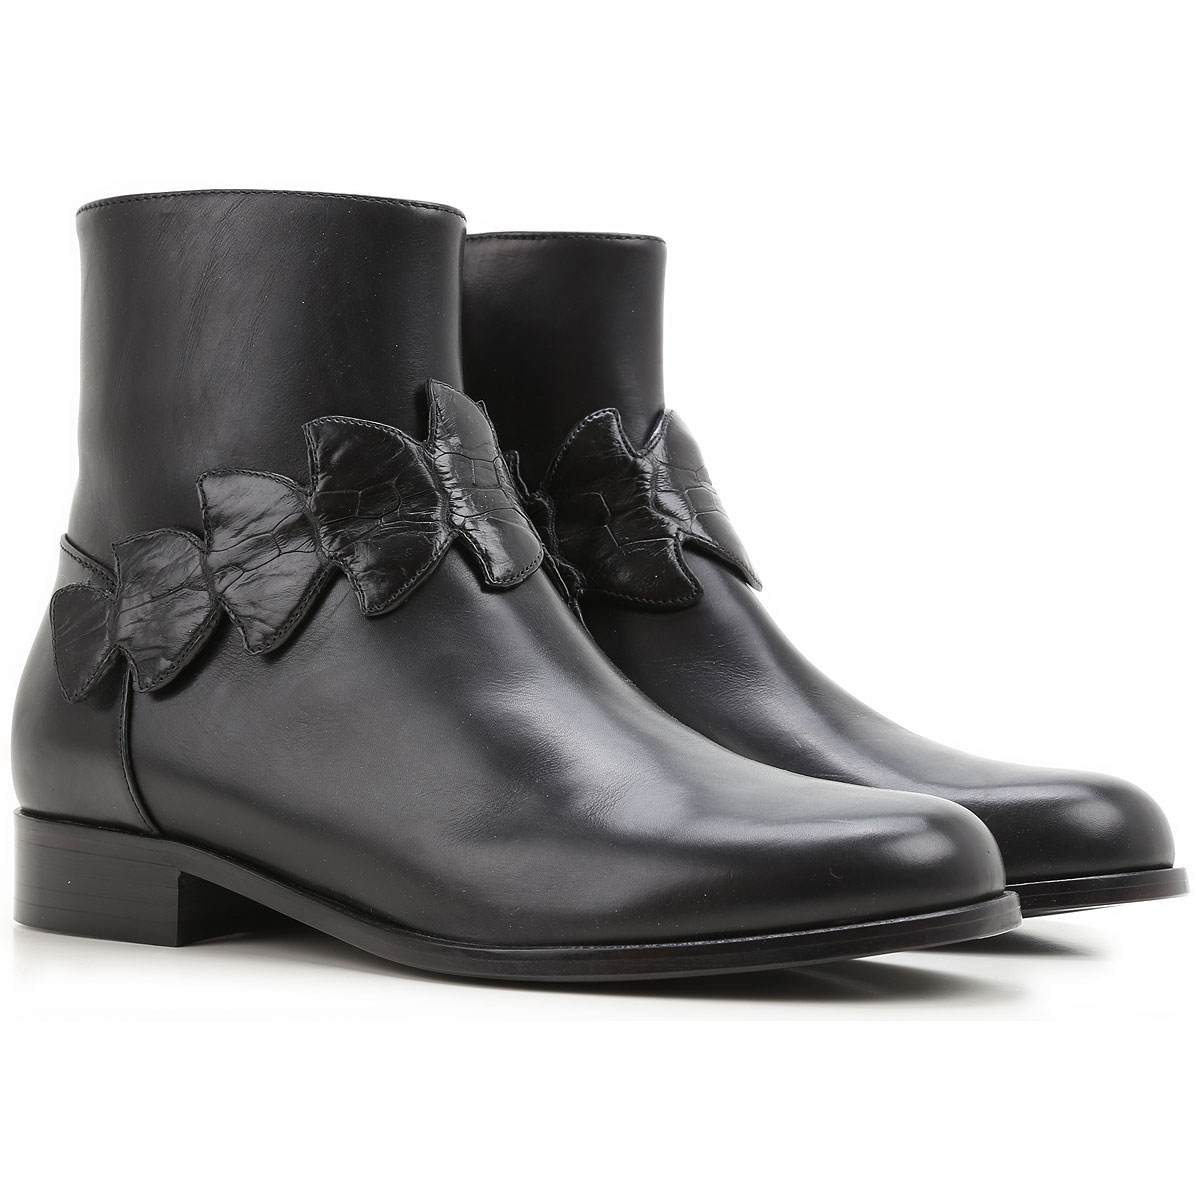 Fendi Boots for Women, Booties On Sale in Outlet, Black, Leather, 2019, 6 8 8.5